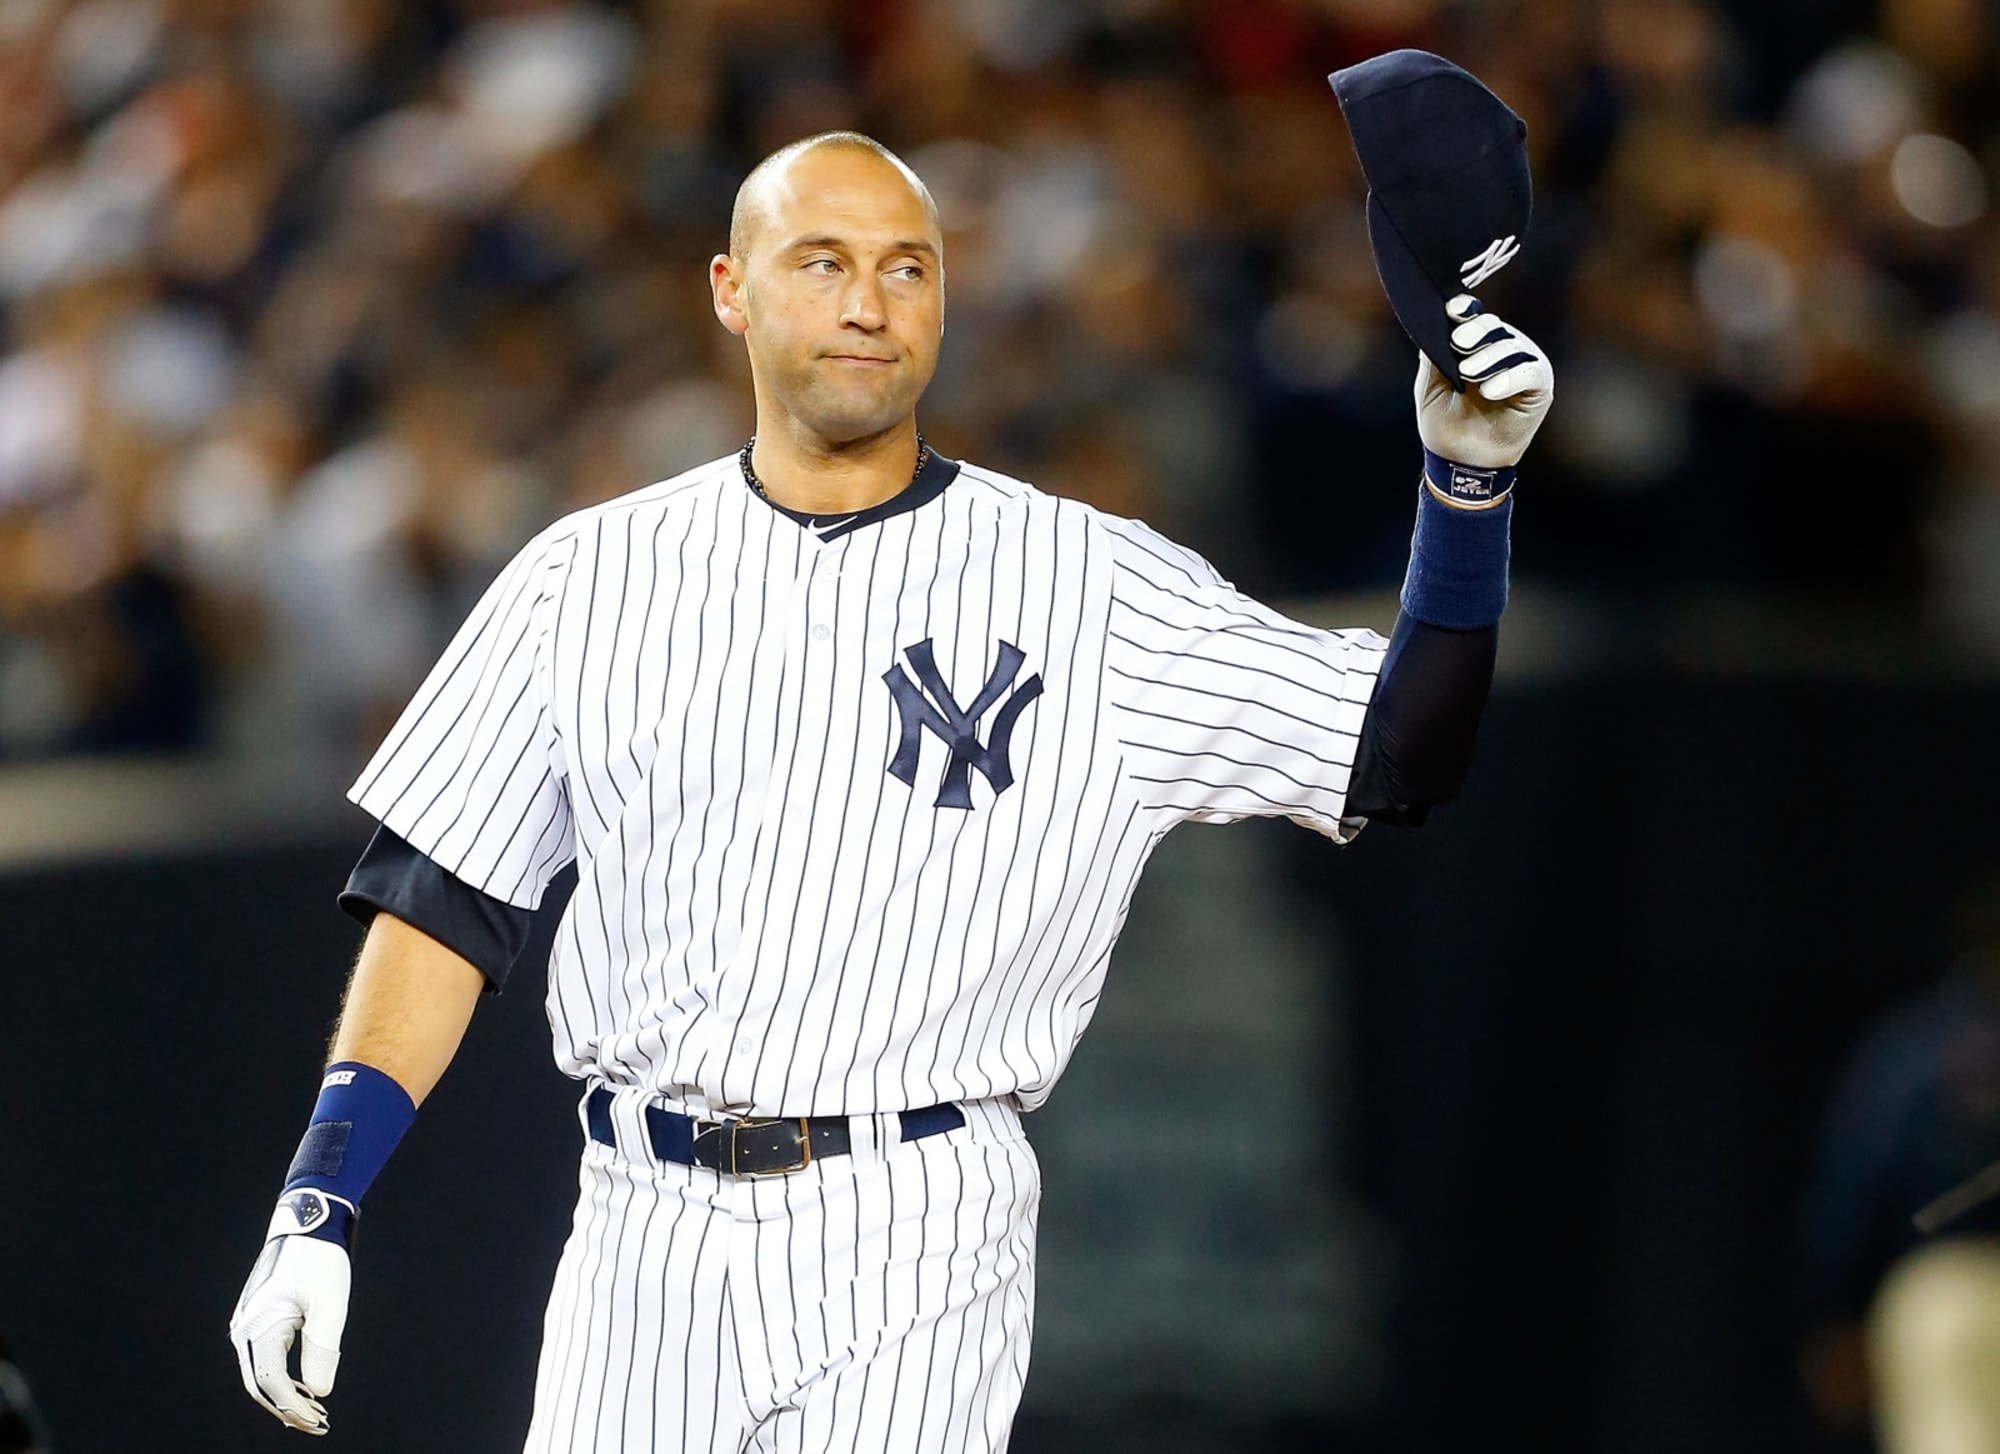 Yankees: Derek Jeter and Alex Rodriguez Respond to the Death of George Floyd